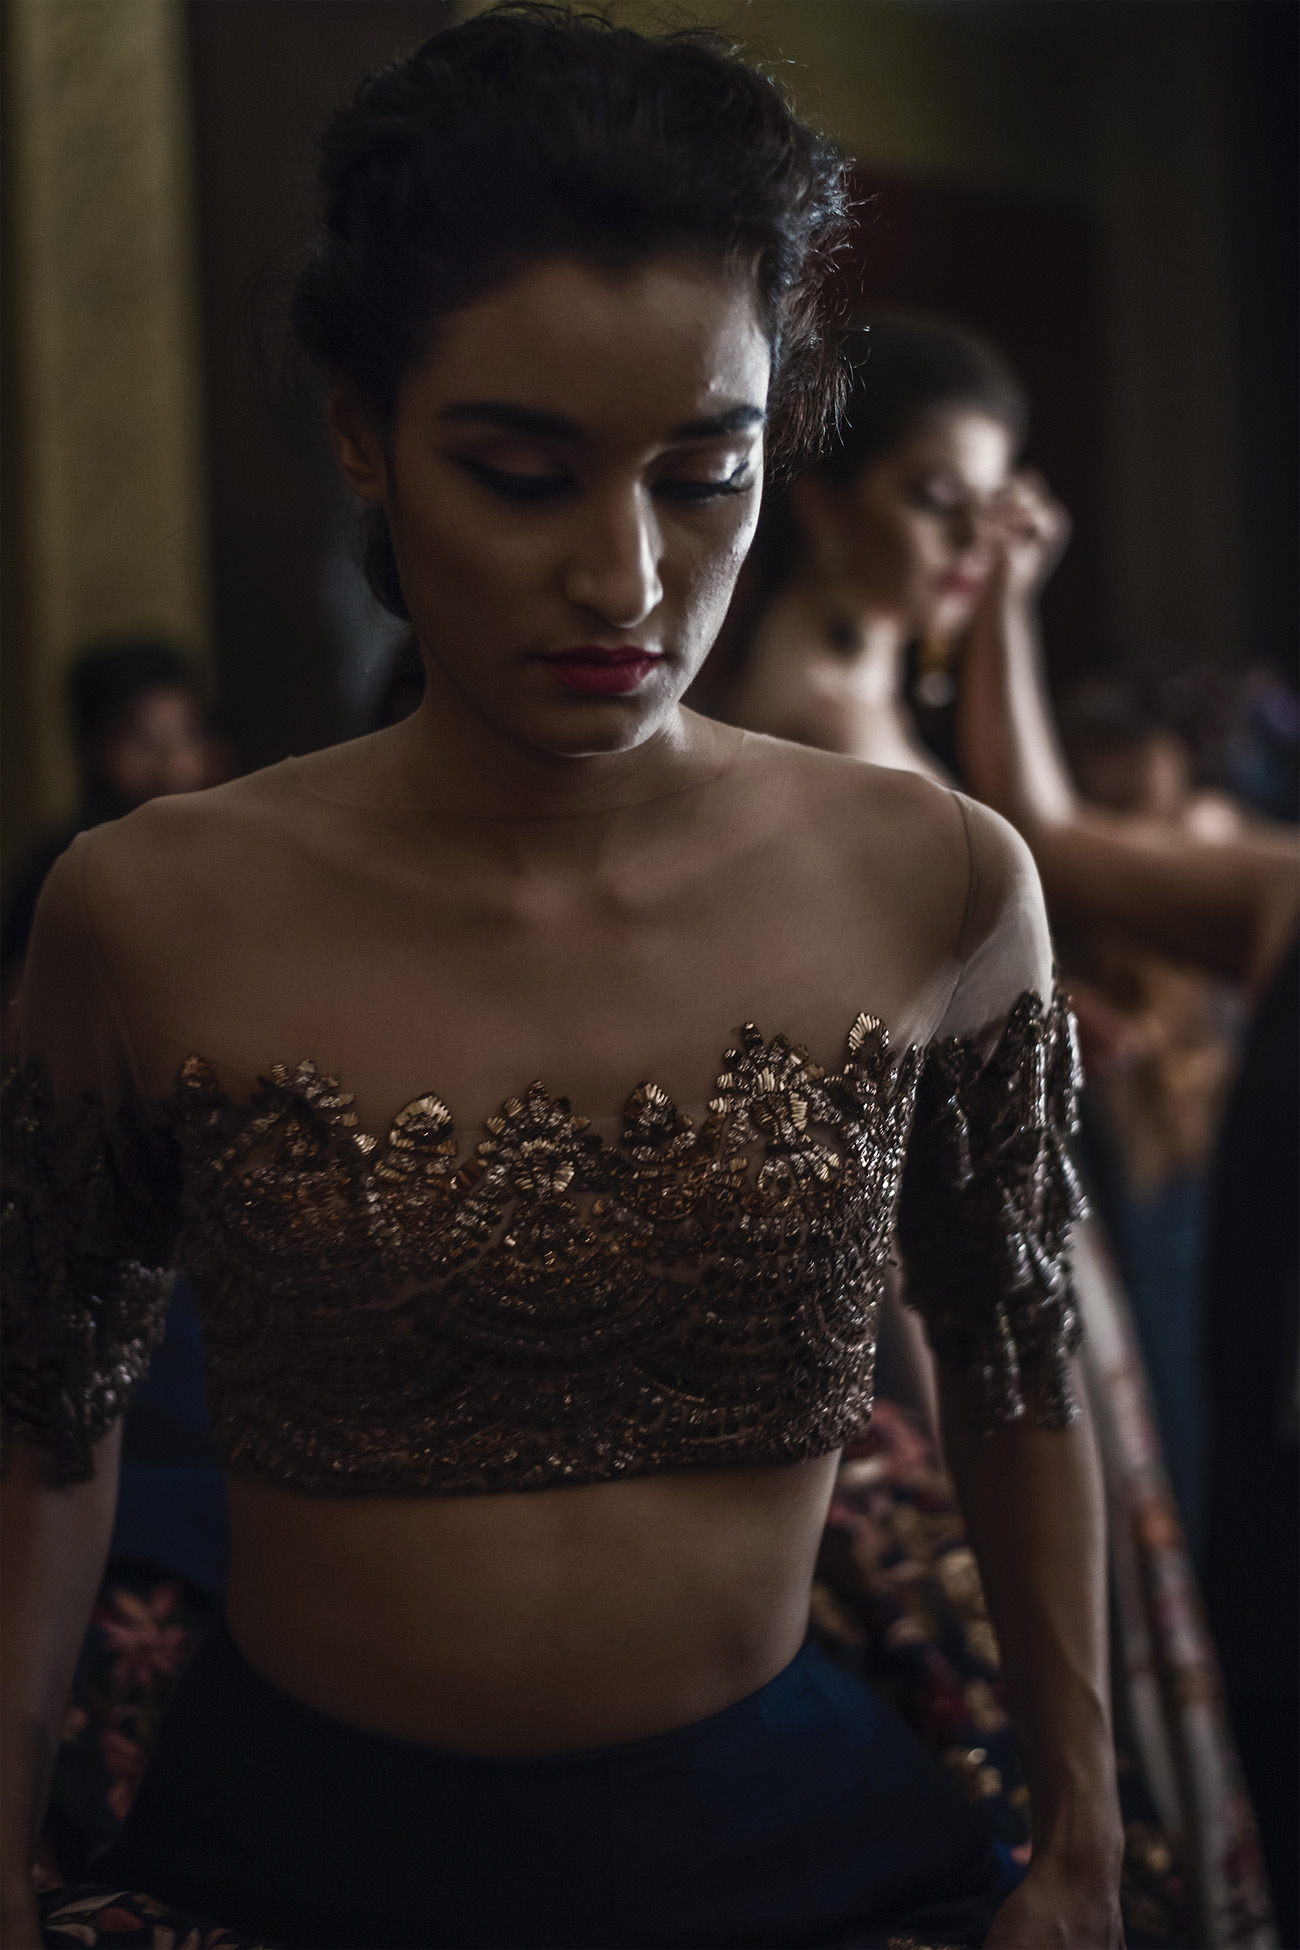 Backstage FDCI India Couture Week 2016 Photo by RAWKY KSH 27